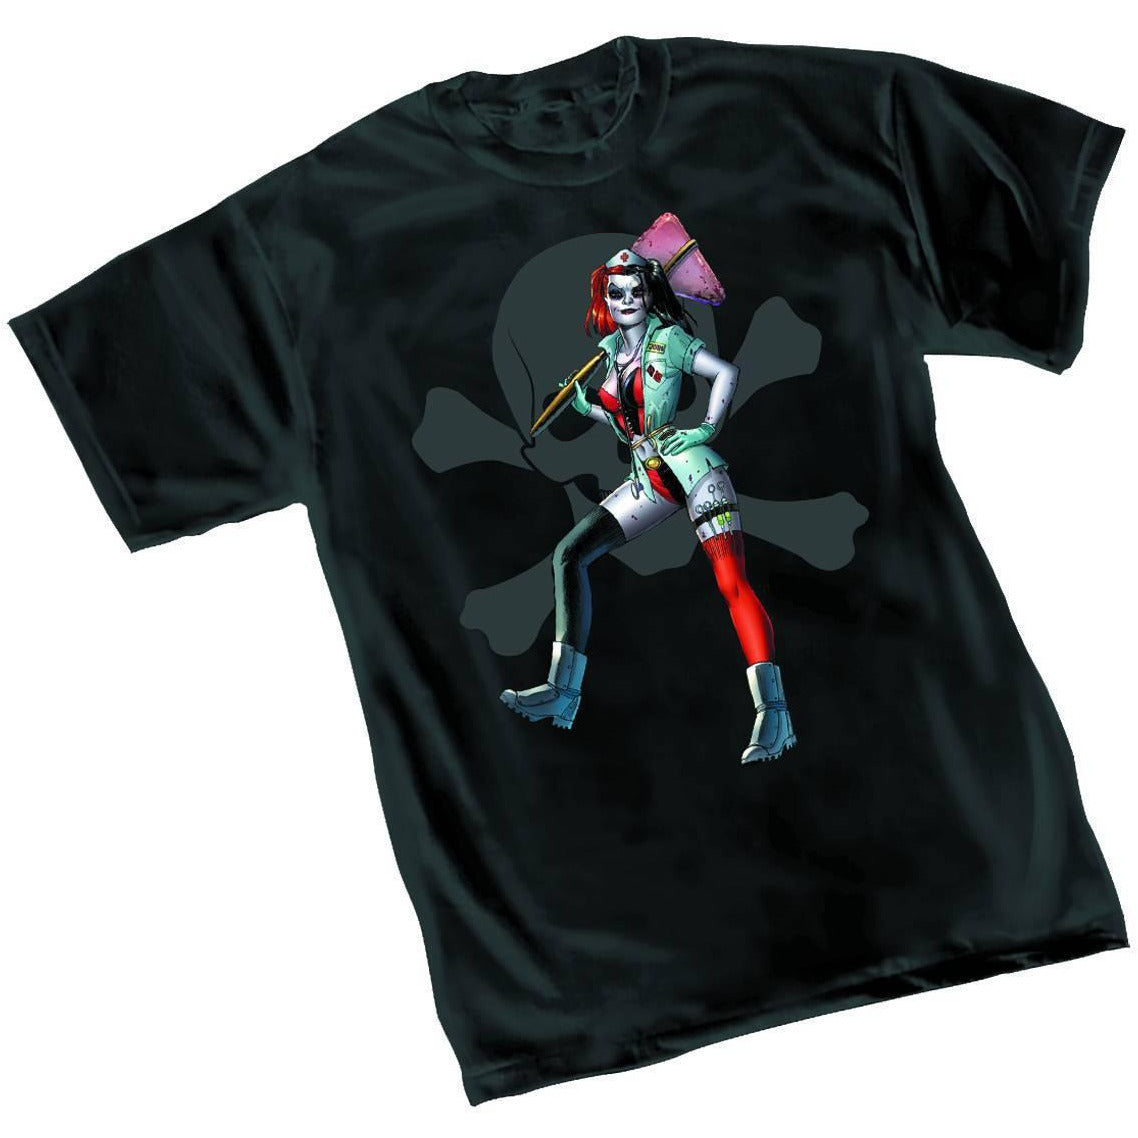 HARLEY QUINN: NURSE T-SHIRT LARGE